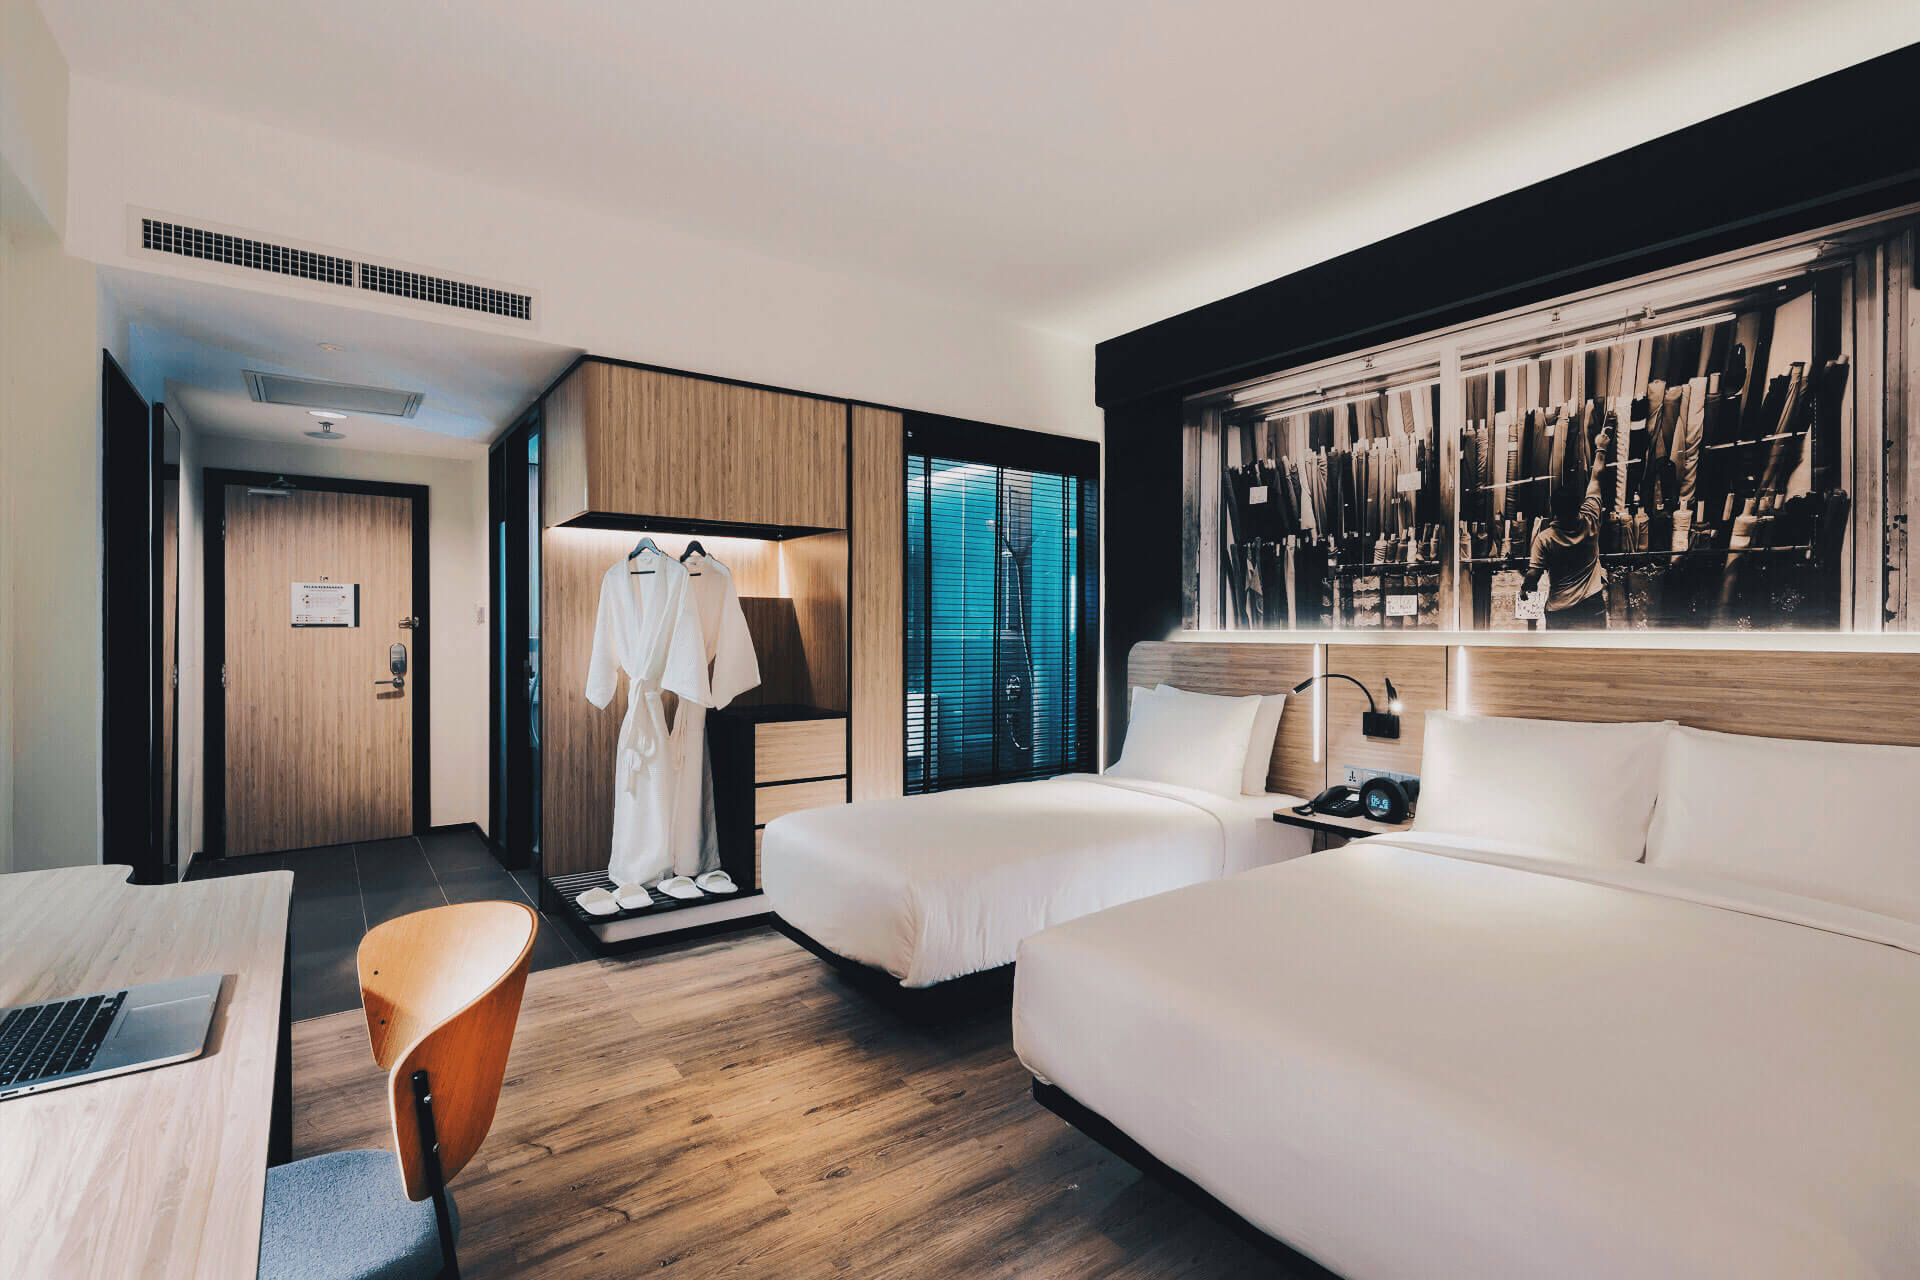 Chic and modern Deluxe Triple room at KL Journal Hotel